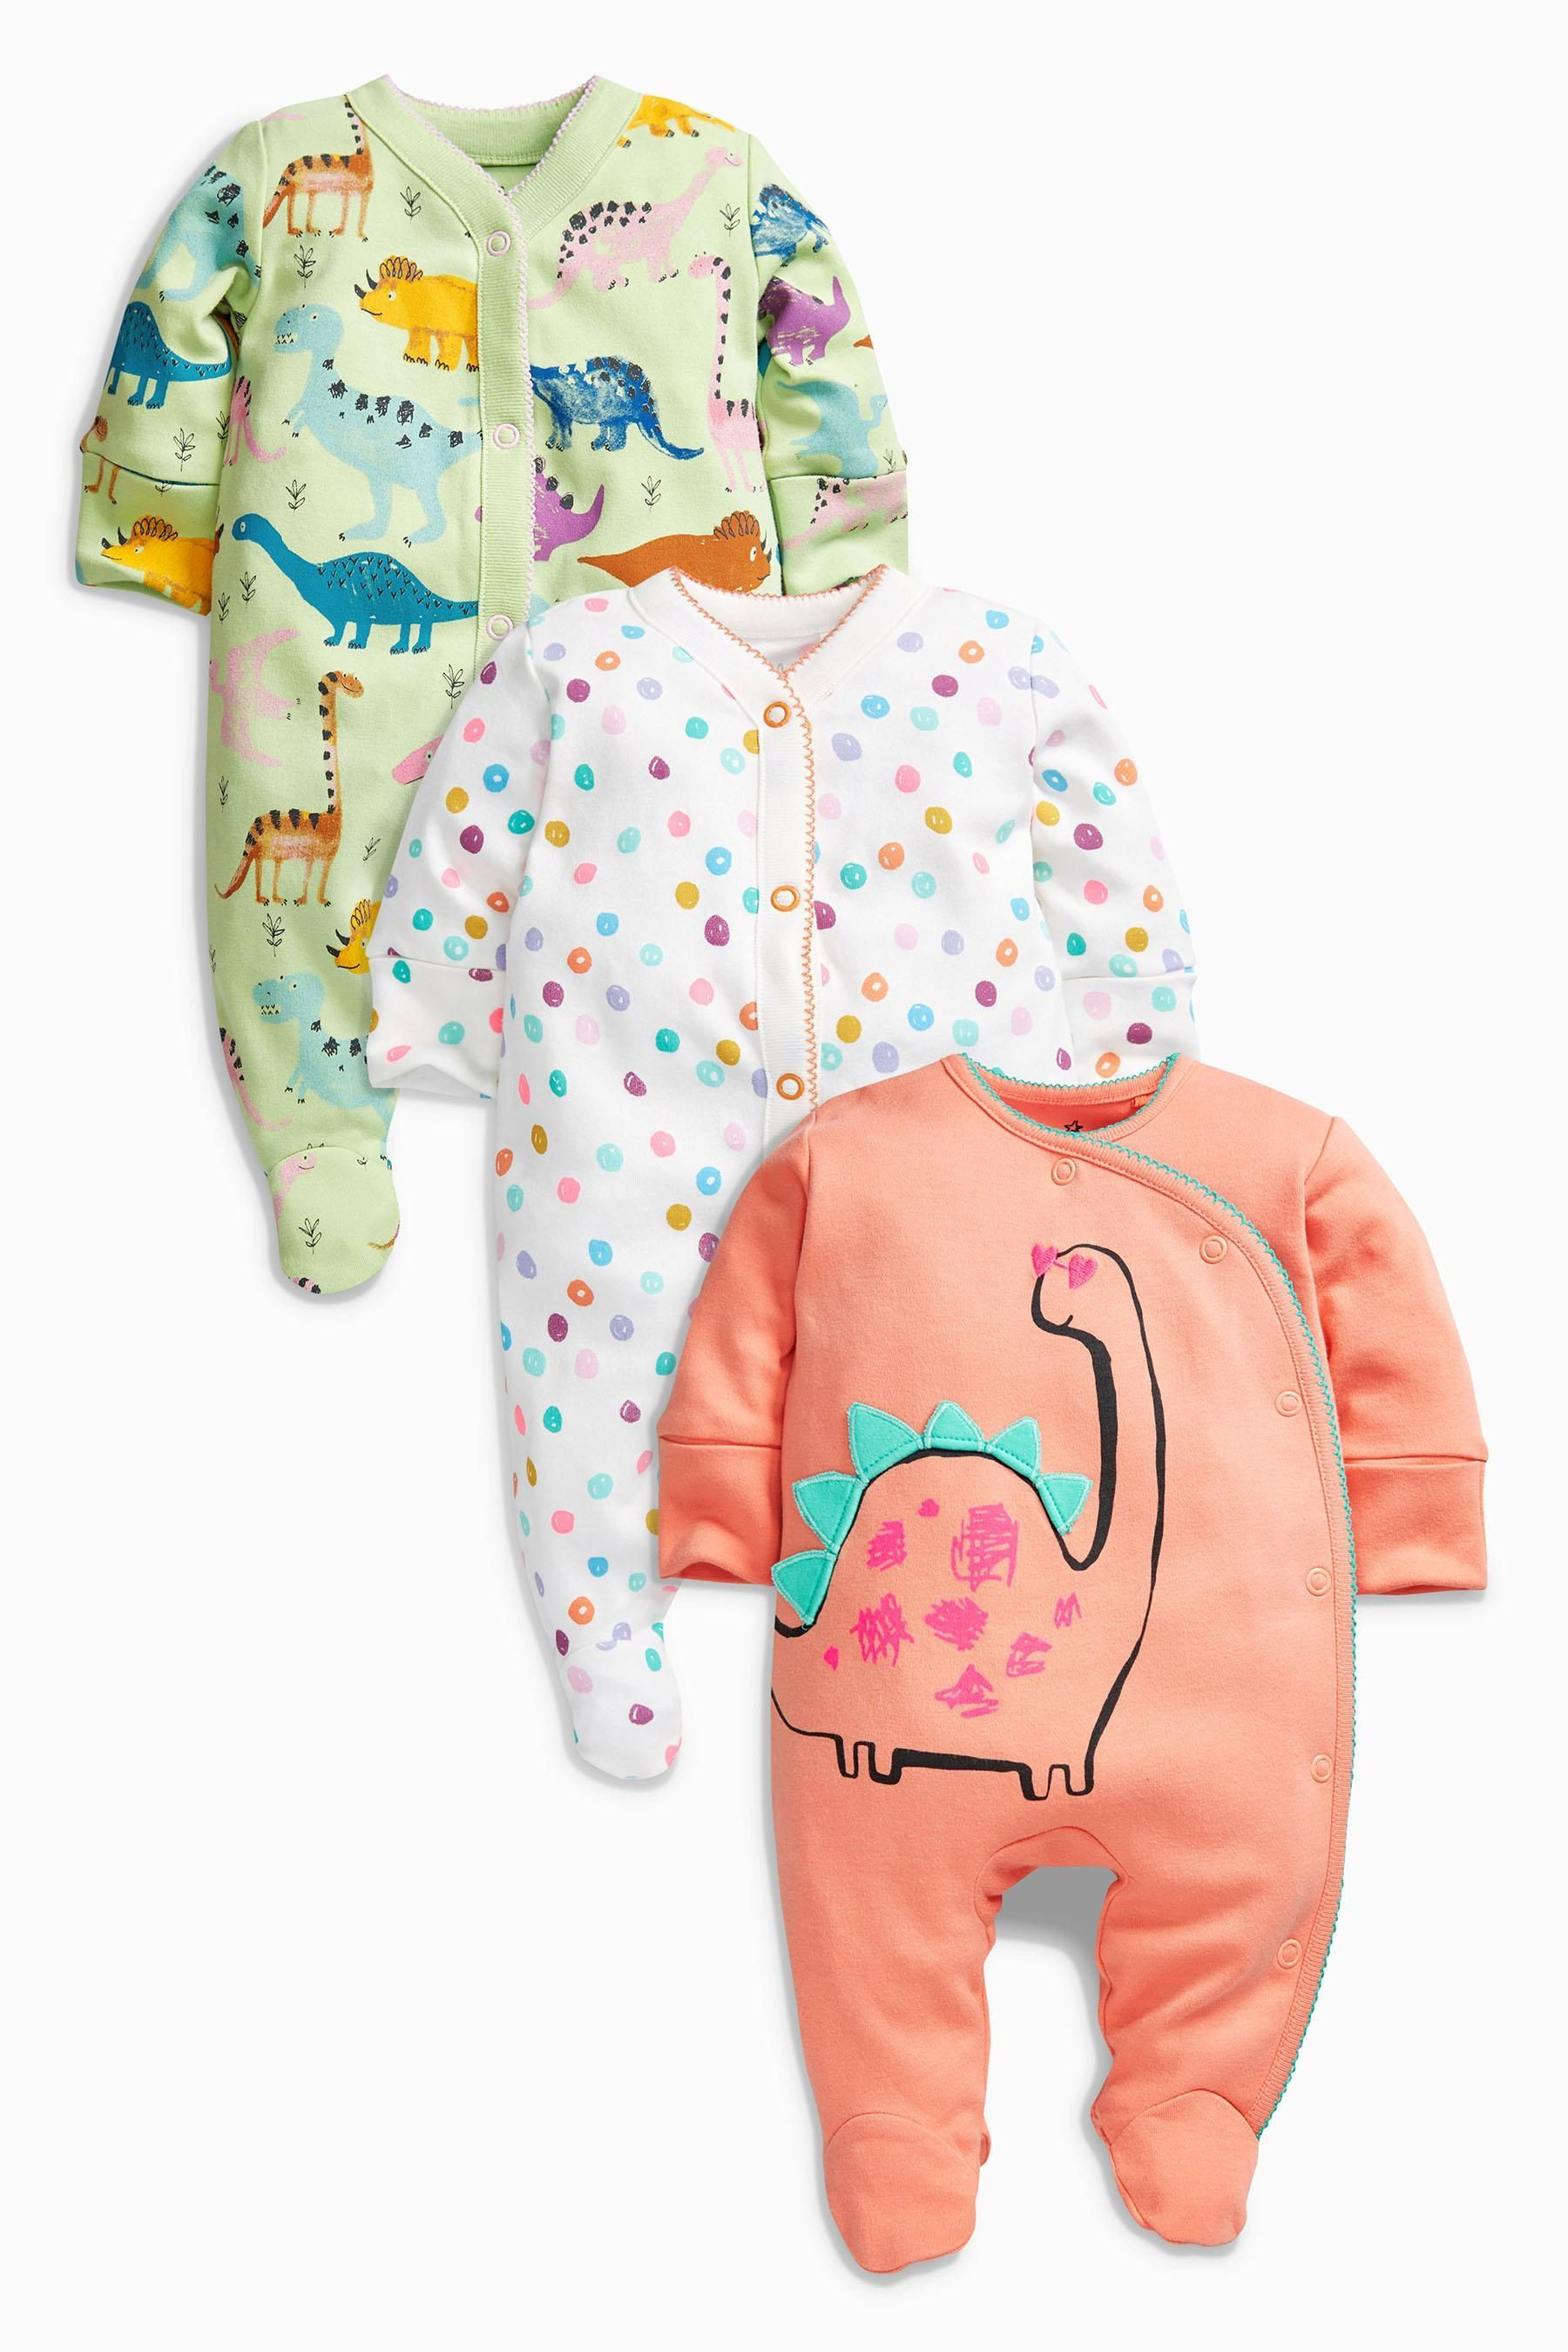 61daf2a8955e Buy Bright Dinosaur Sleepsuits Three Pack (0mths-2yrs) from the Next UK  online shop